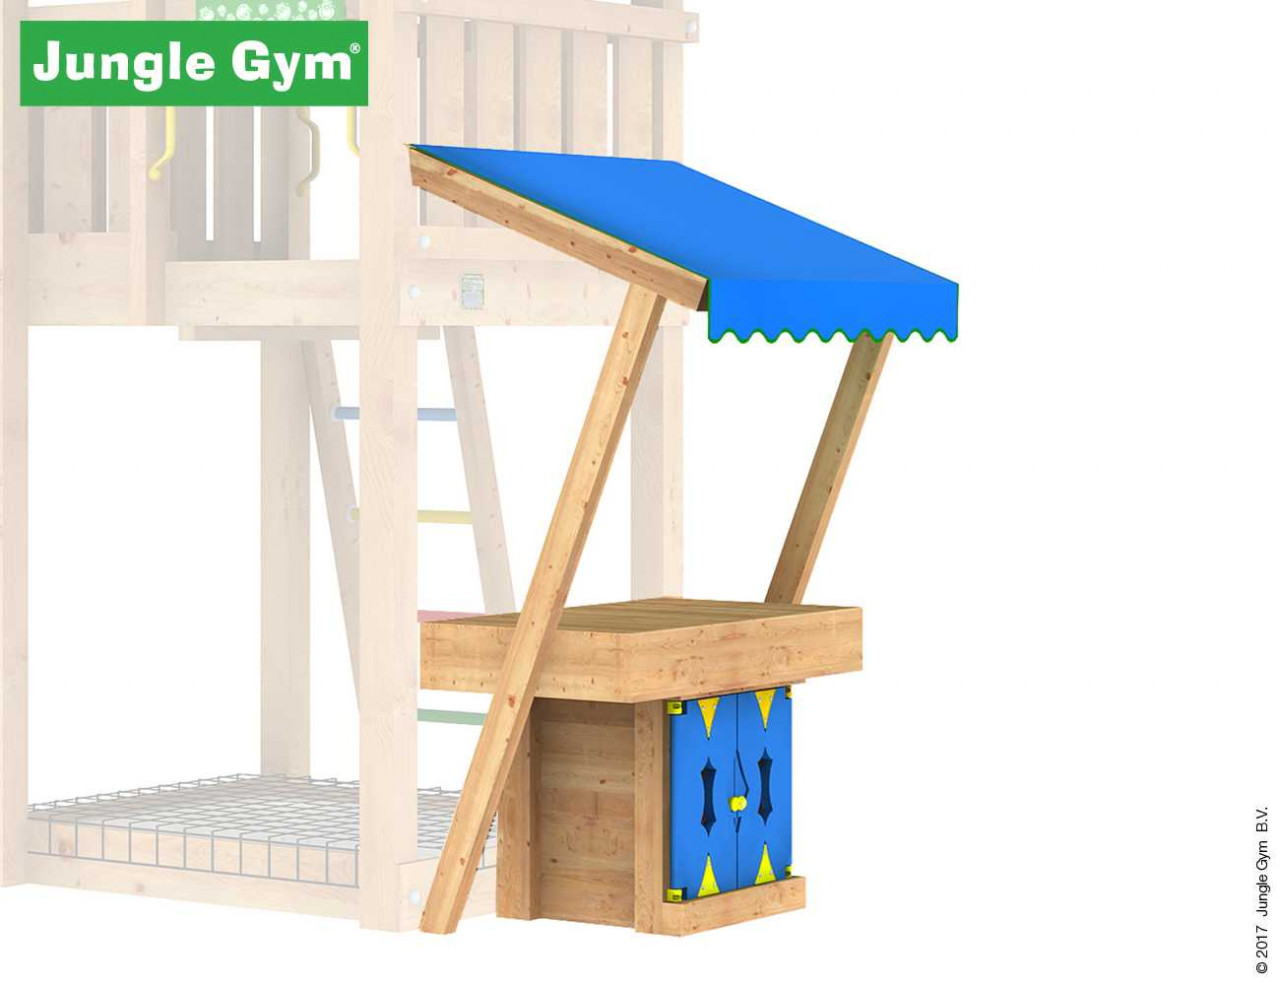 Jungle Gym Markt Modul in Douglasie natur